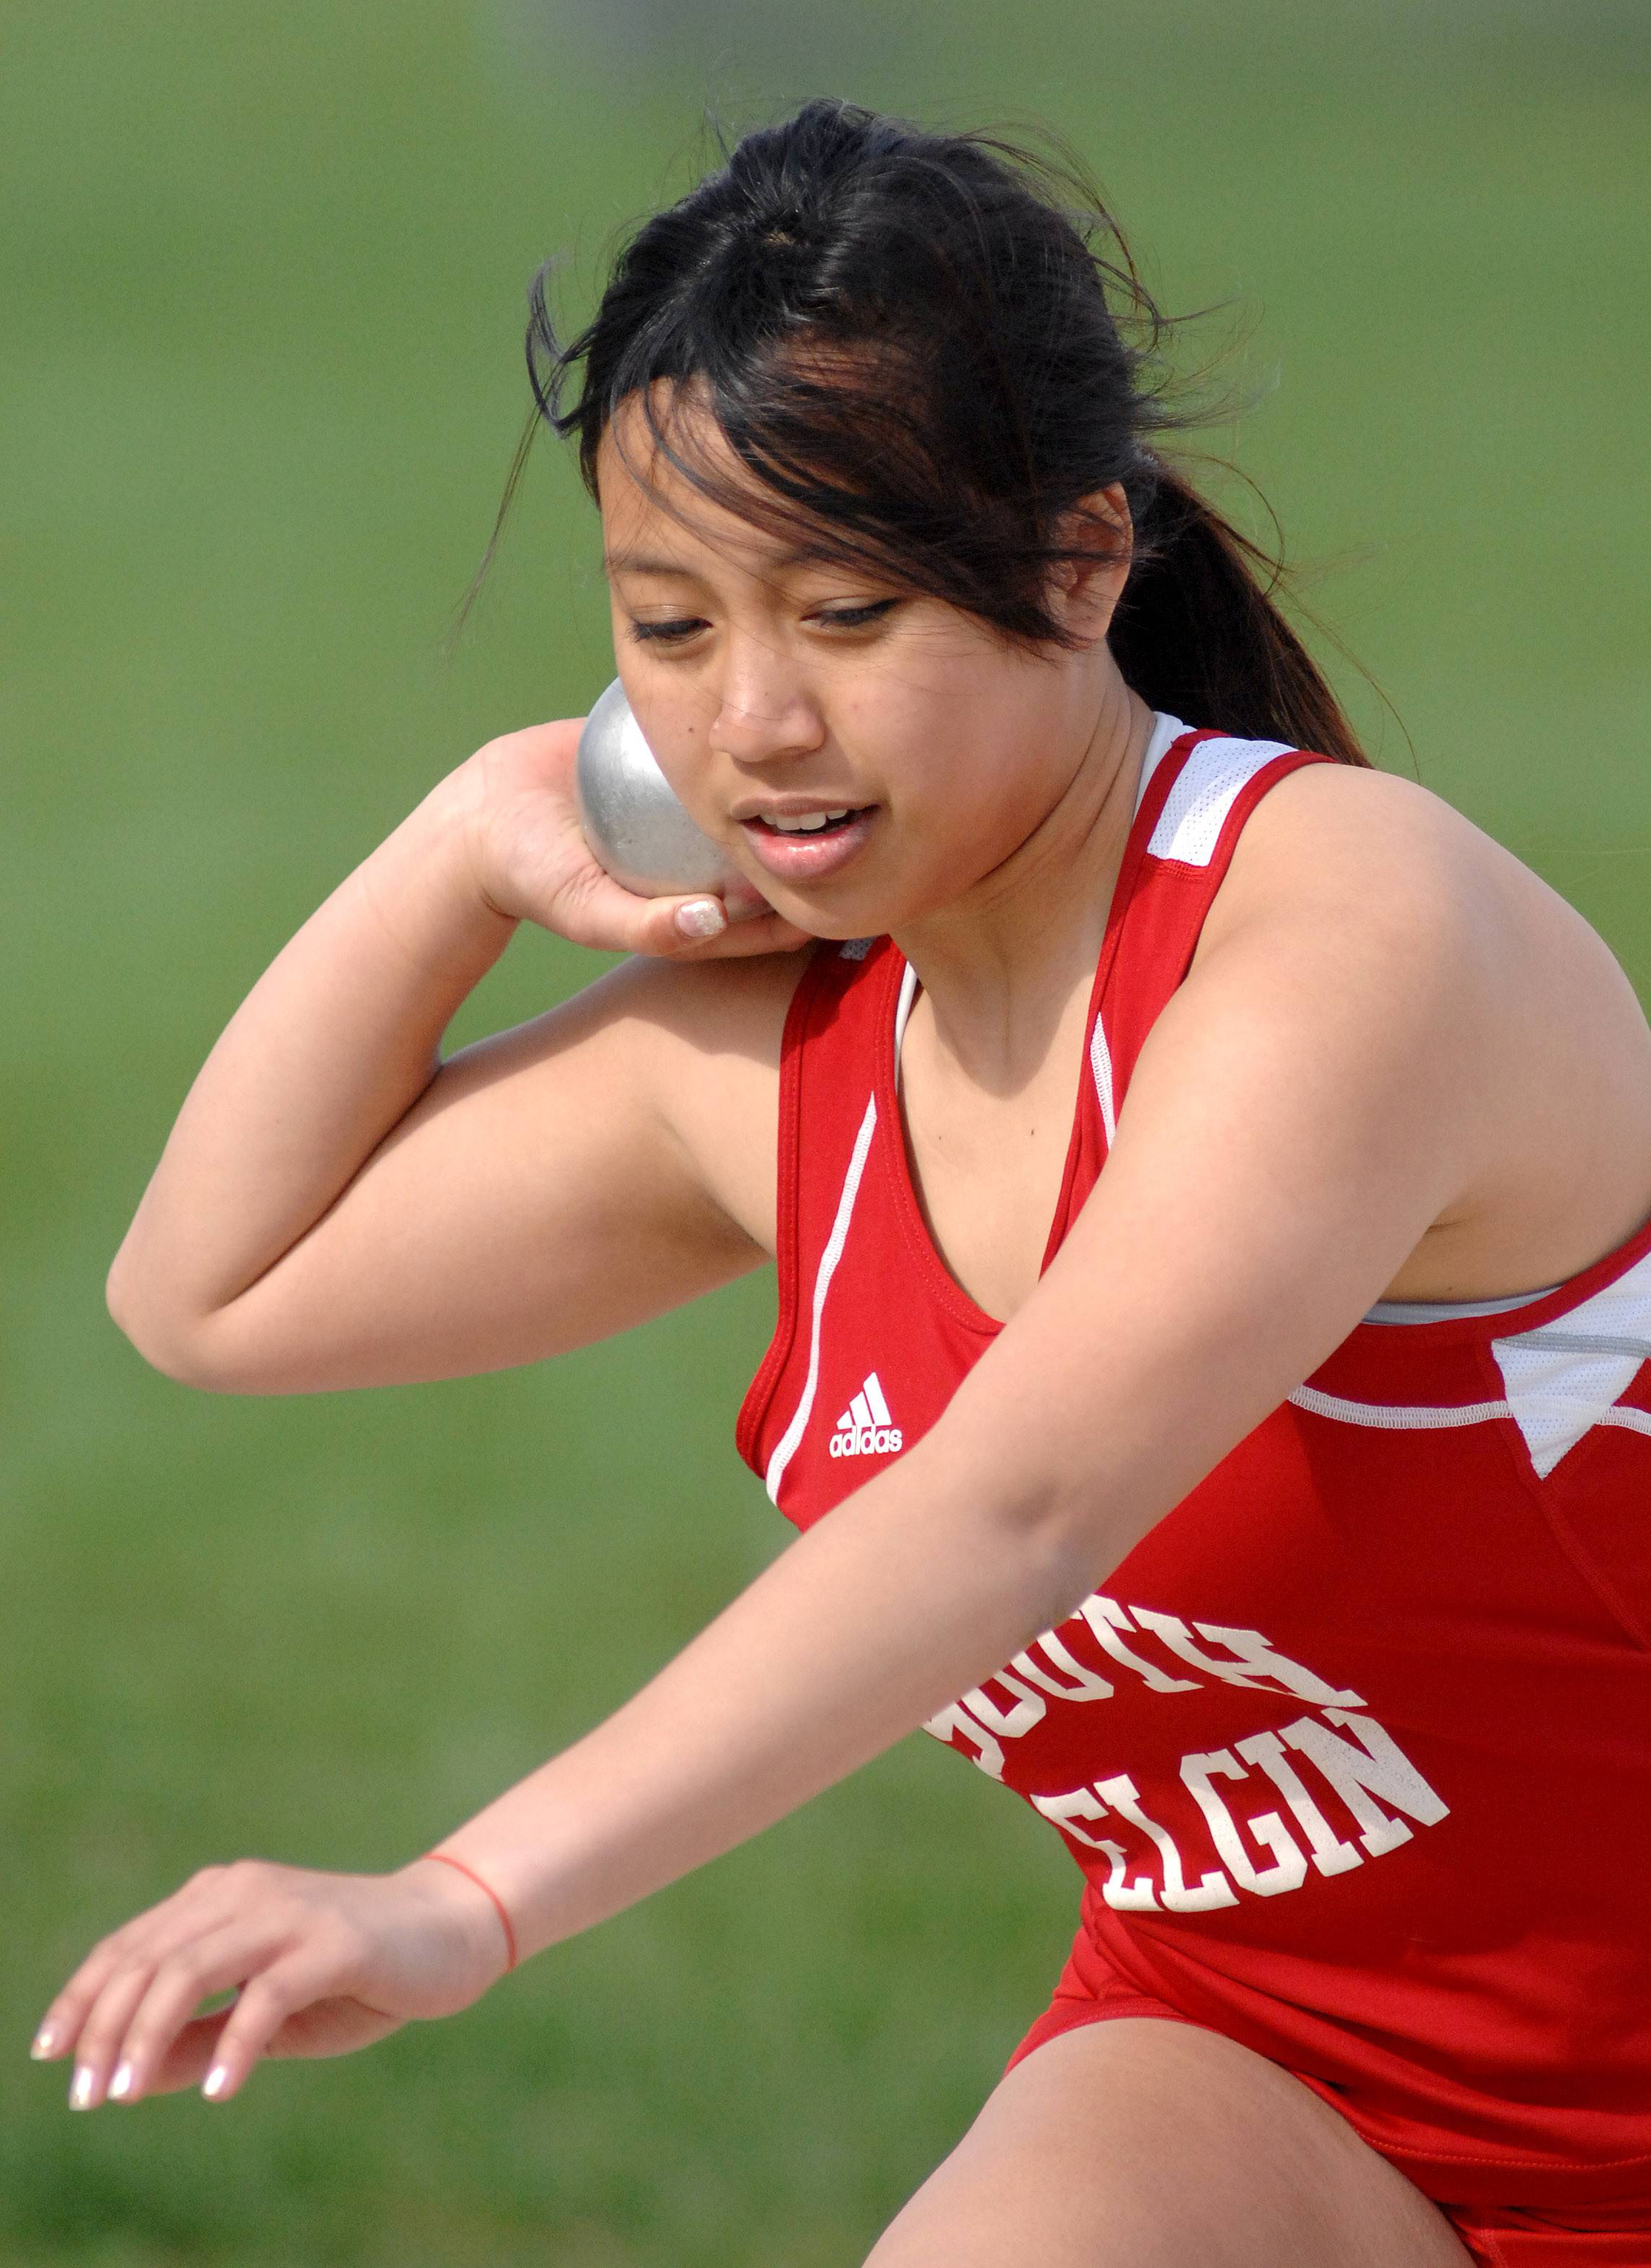 South Elgin's Kaylin Ramangkoun in the shot-put finals at Kaneland High School in Maple Park on Friday, May 2.